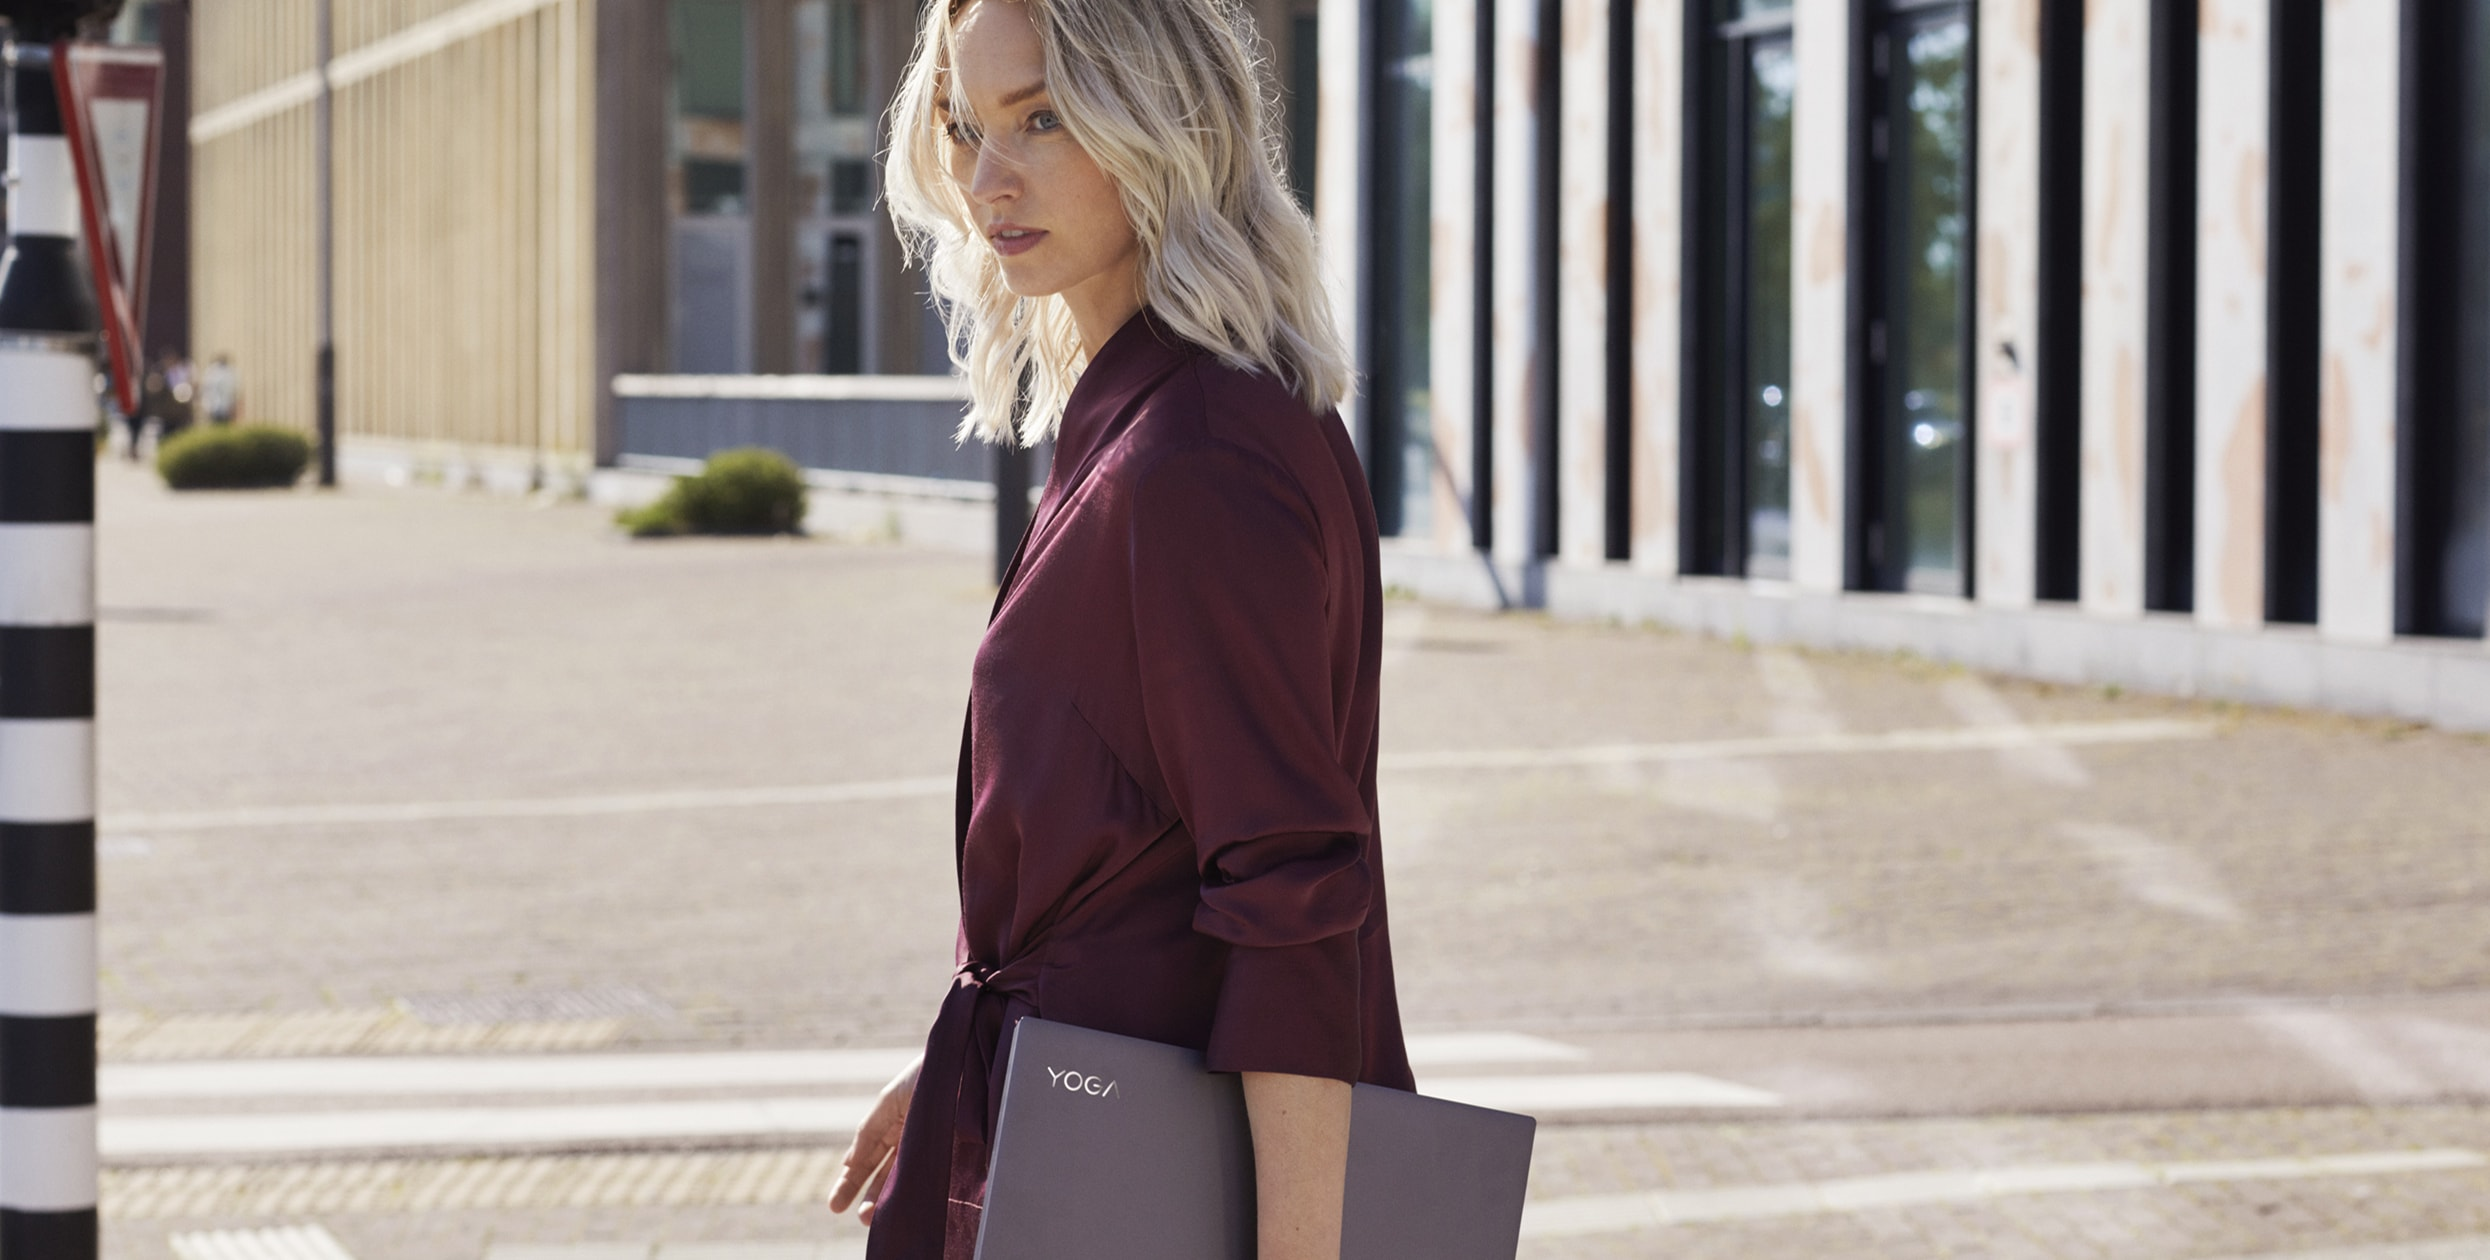 Yoga C940 Lifestyle Image Holding Laptop